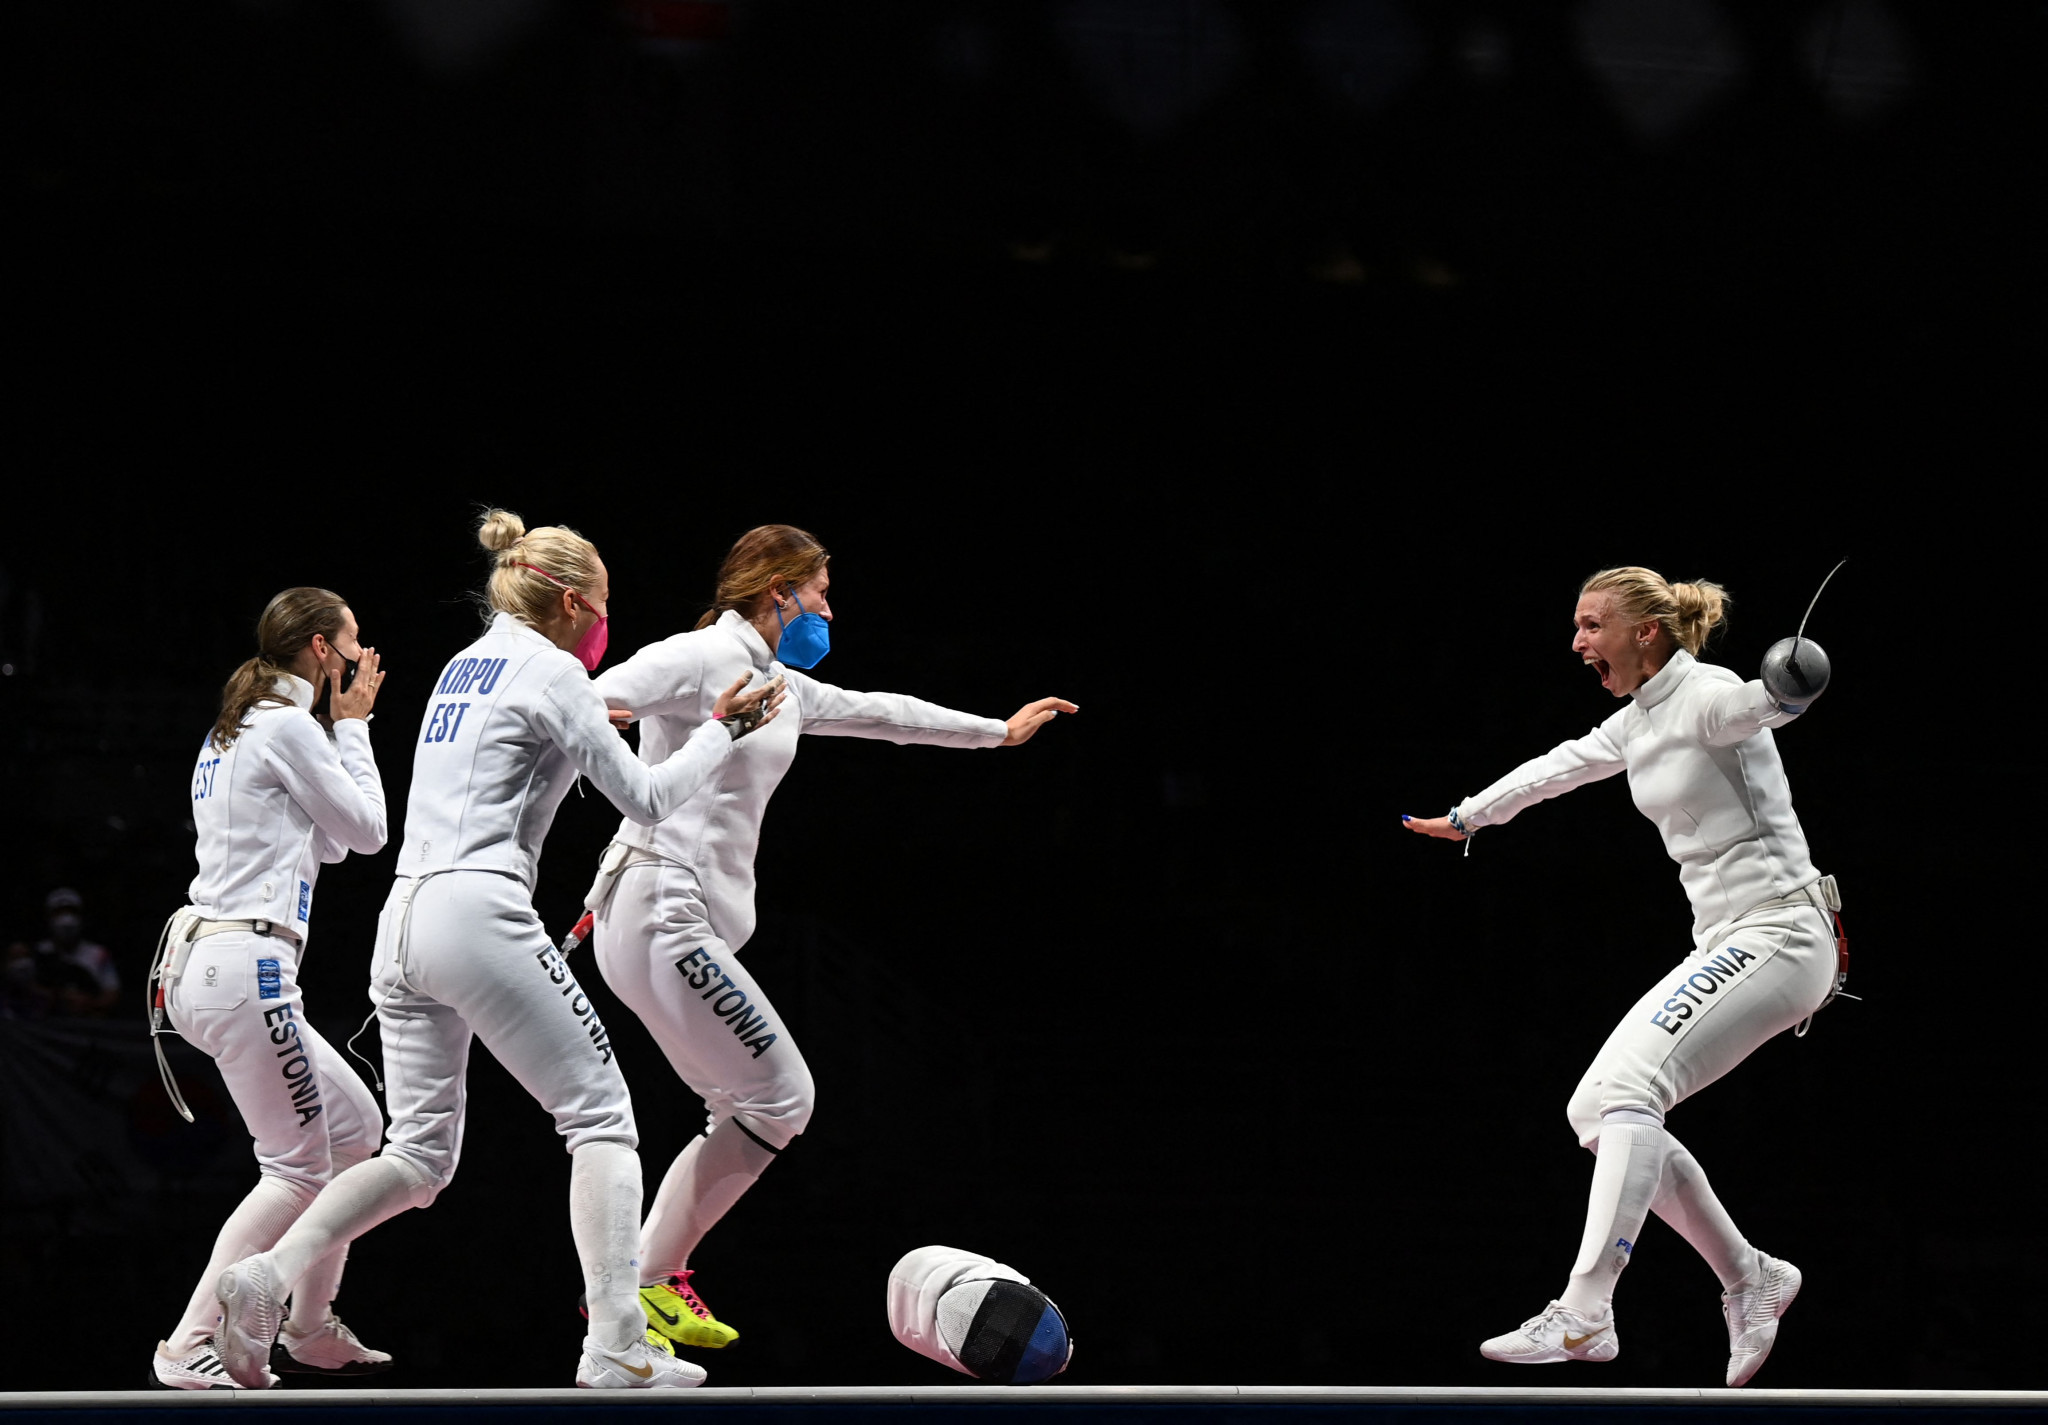 Estonia win first-ever Olympic fencing gold medal in women's team épée